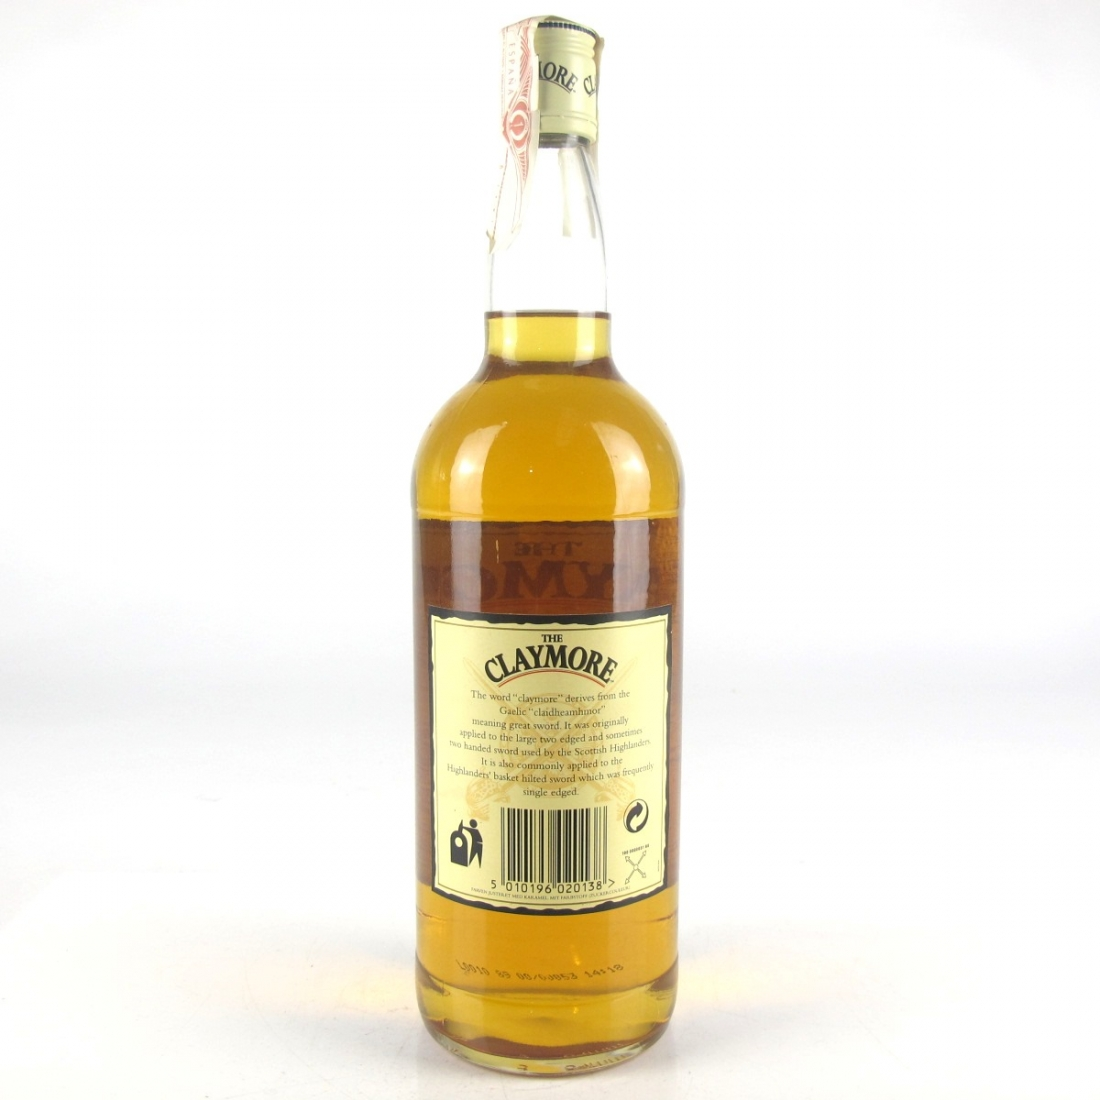 Claymore Scotch Whisky 1 Litre